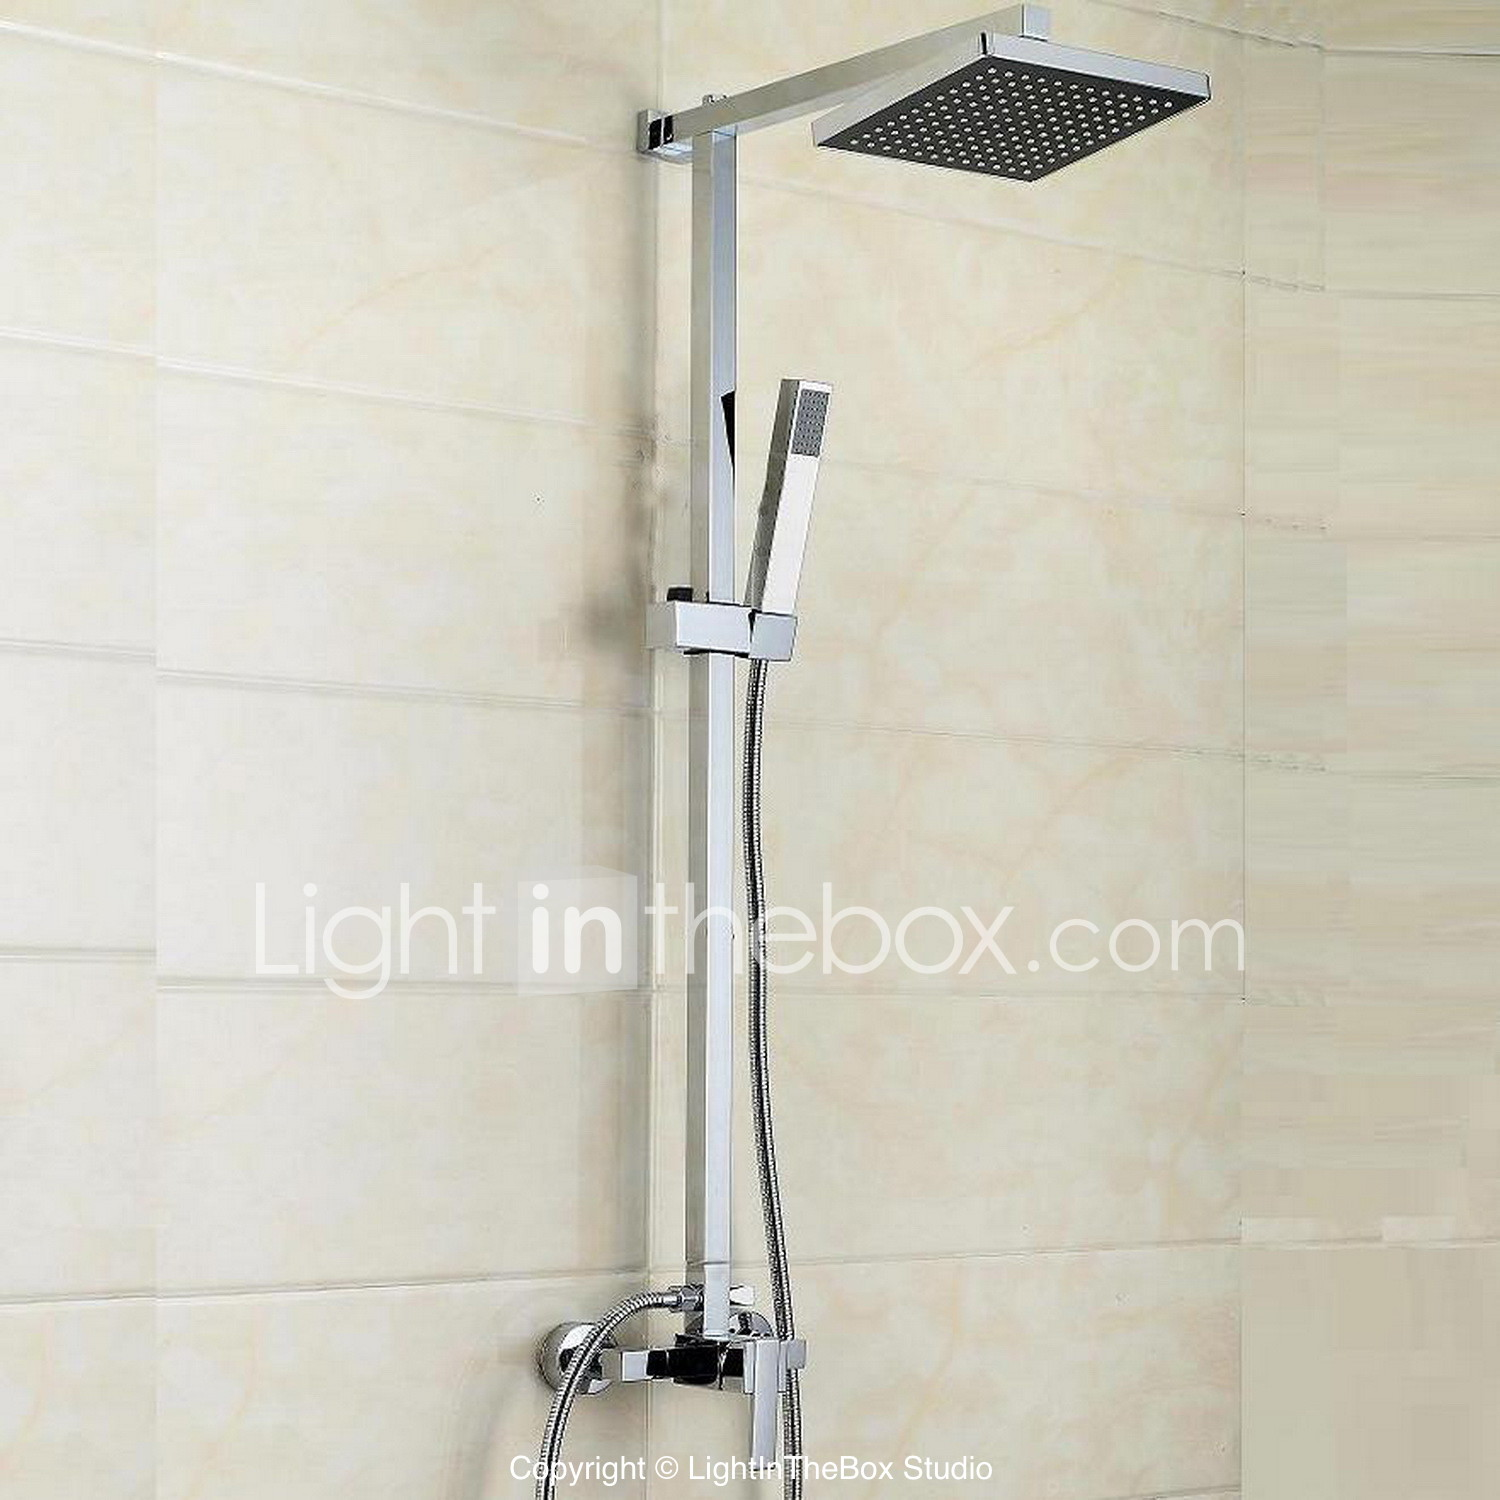 Waterfalls Shower Head With Handheld - Lightinthebox.com